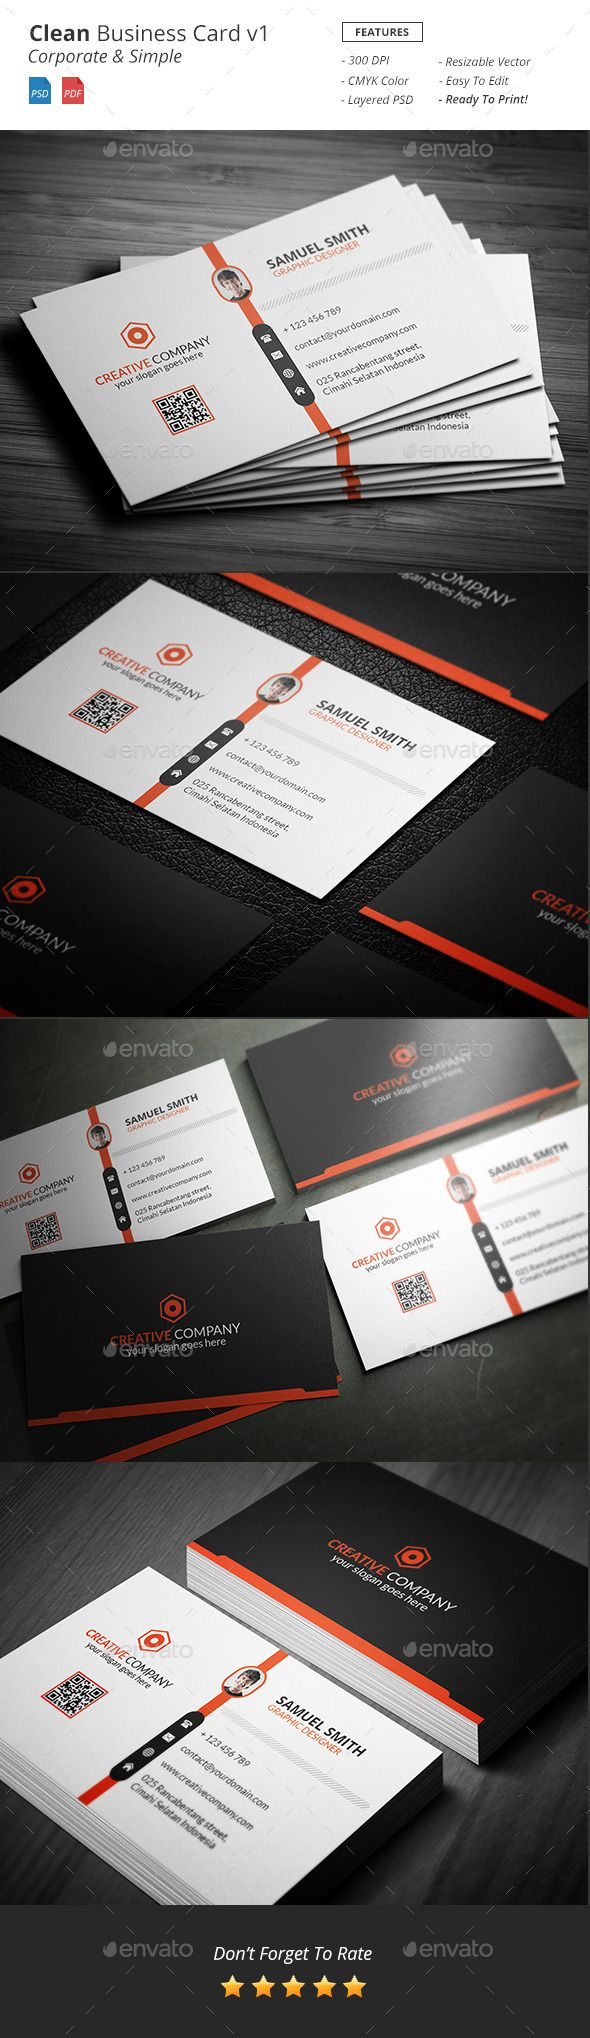 Clean - Corporate Business Card Template #design Download: http://graphicriver.net/item/clean-corporate-business-card-v1/12240781?ref=ksioks